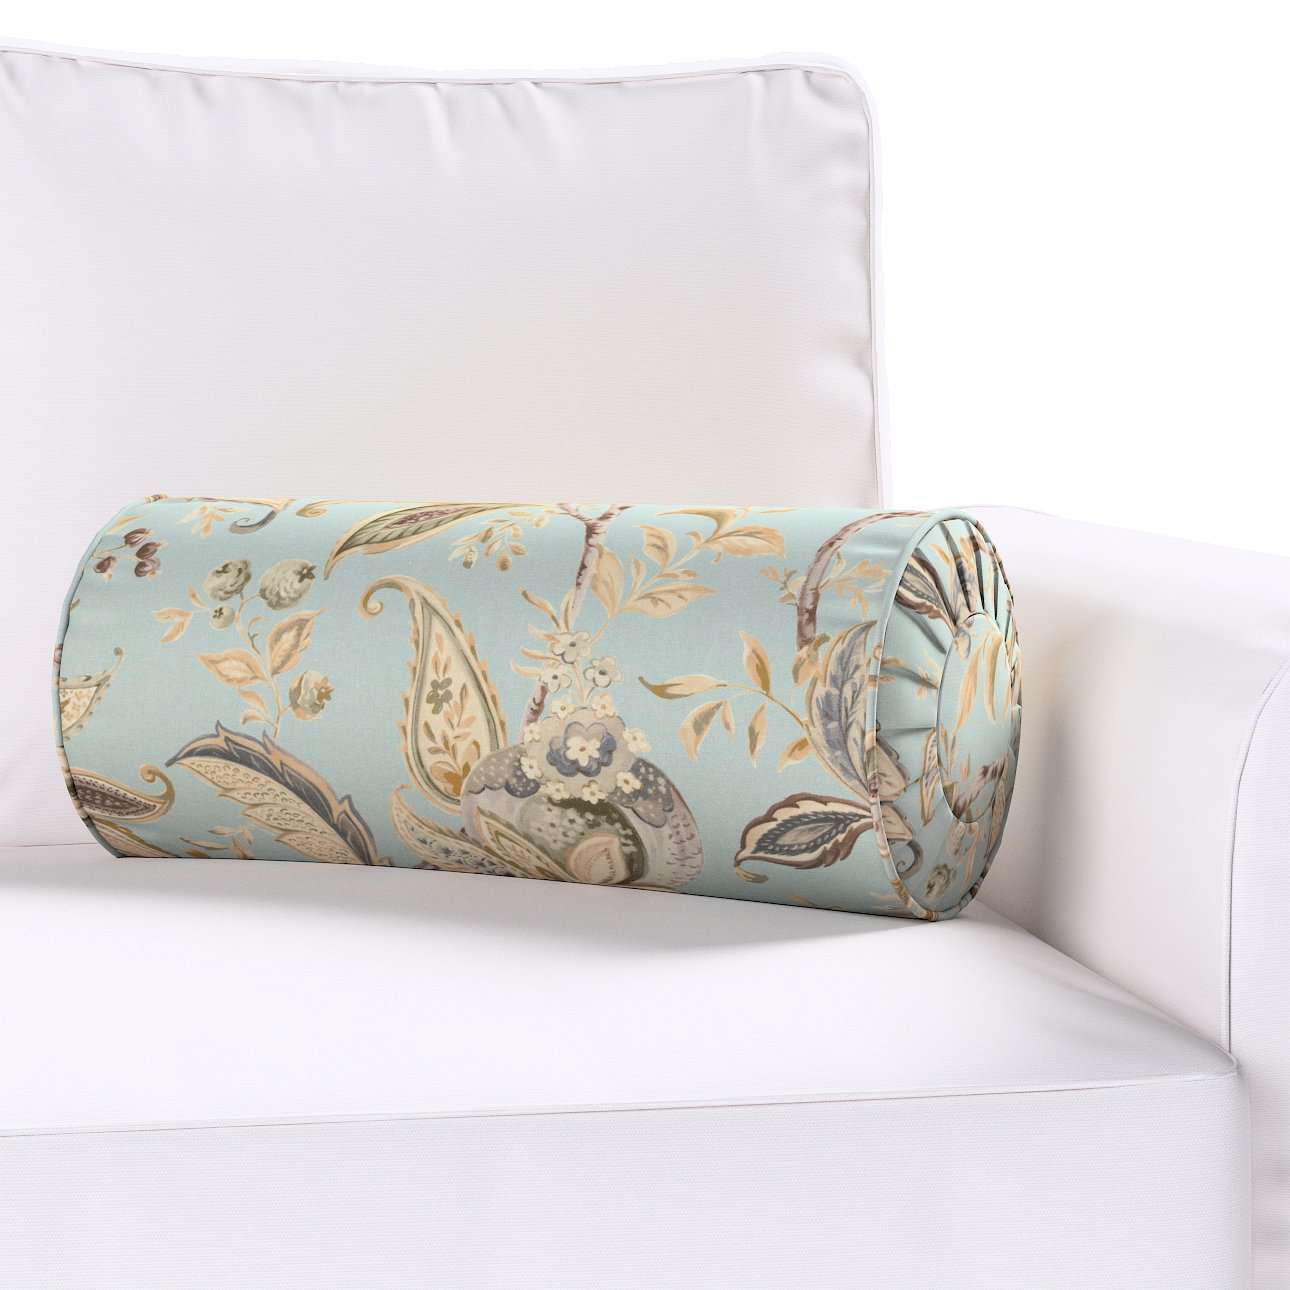 Bolster cushion with pleats in collection Gardenia, fabric: 142-18